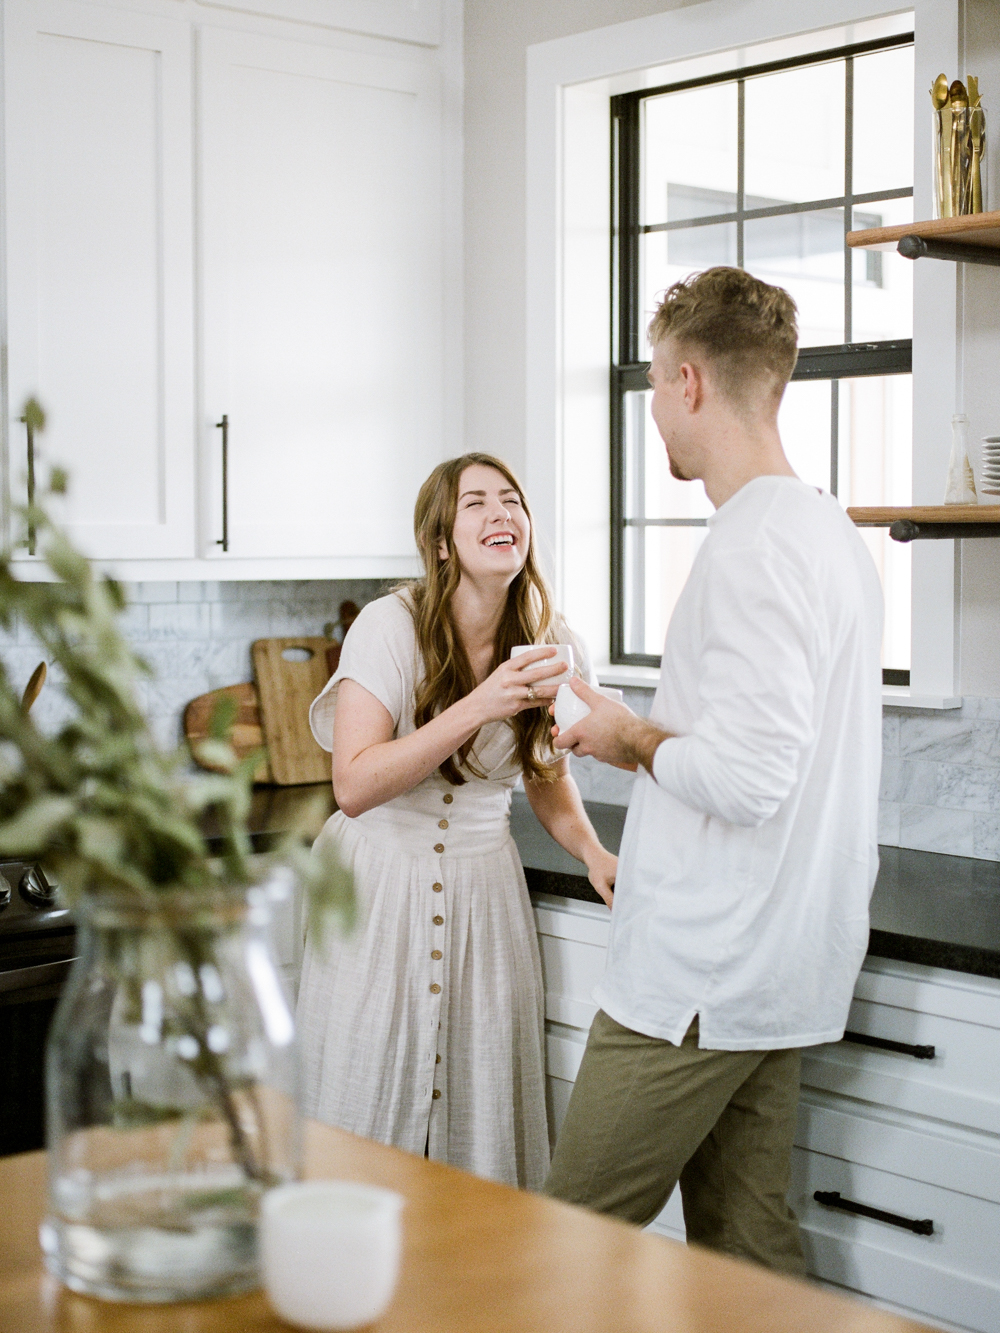 at home engagement session - Christine Gosch - featured on Magnolia Rouge - film photographer - elopement and intimate wedding photographer-8.jpg